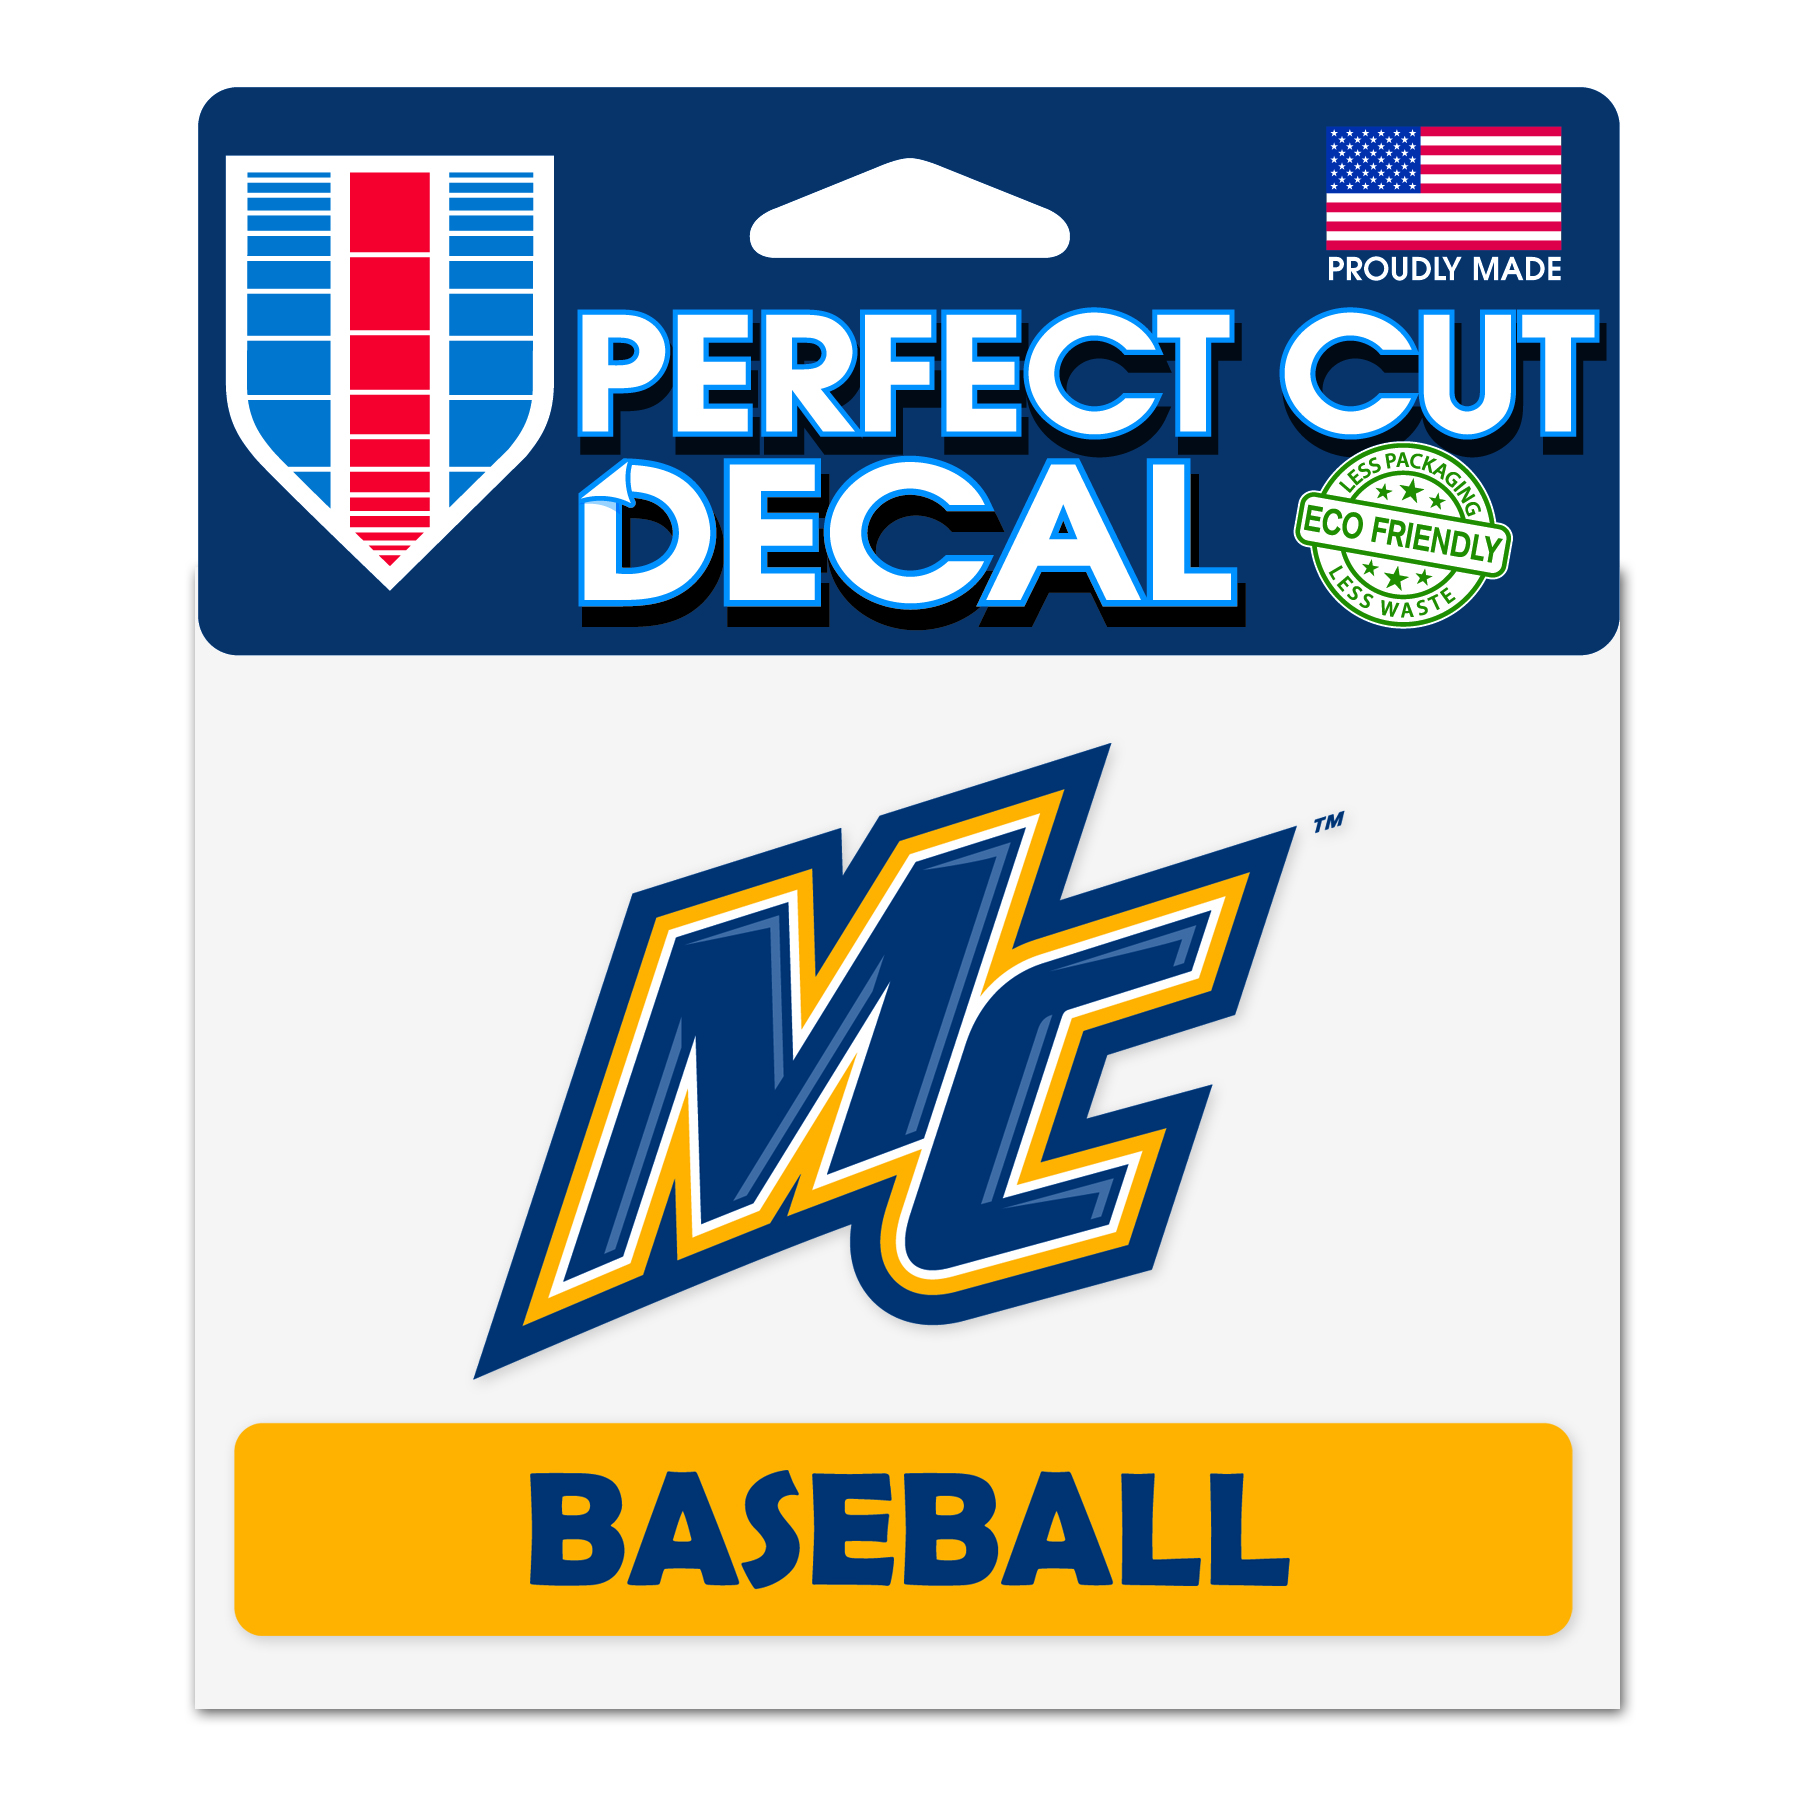 Decal - Baseball